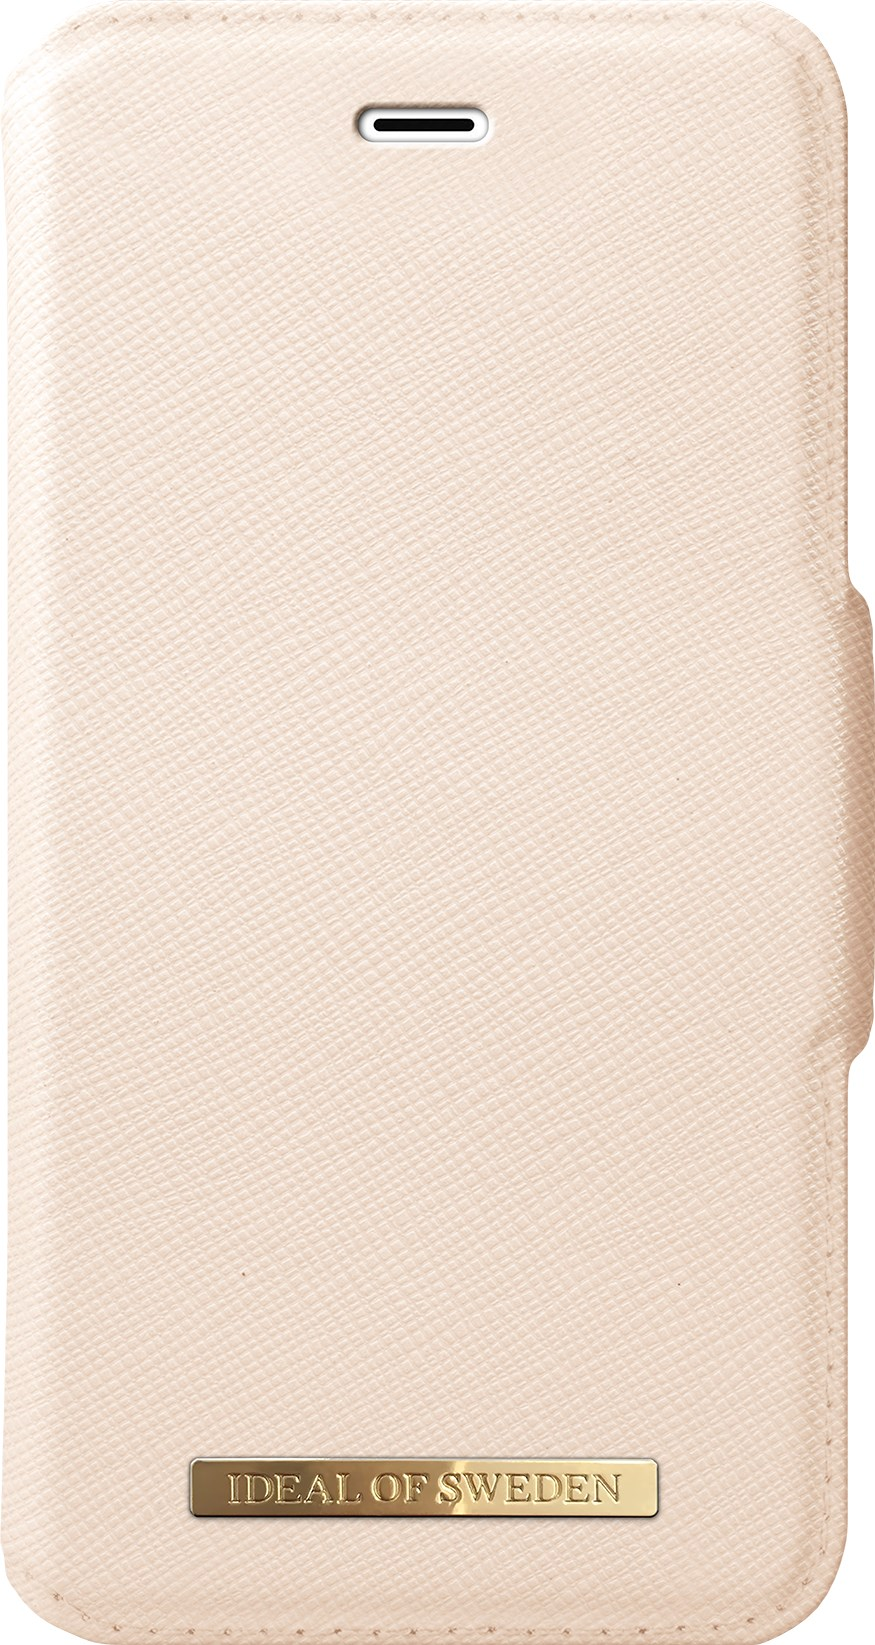 iDeal of Sweden Ideal Fashion Wallet Iphone 6/6S/7/8 Plus Beige